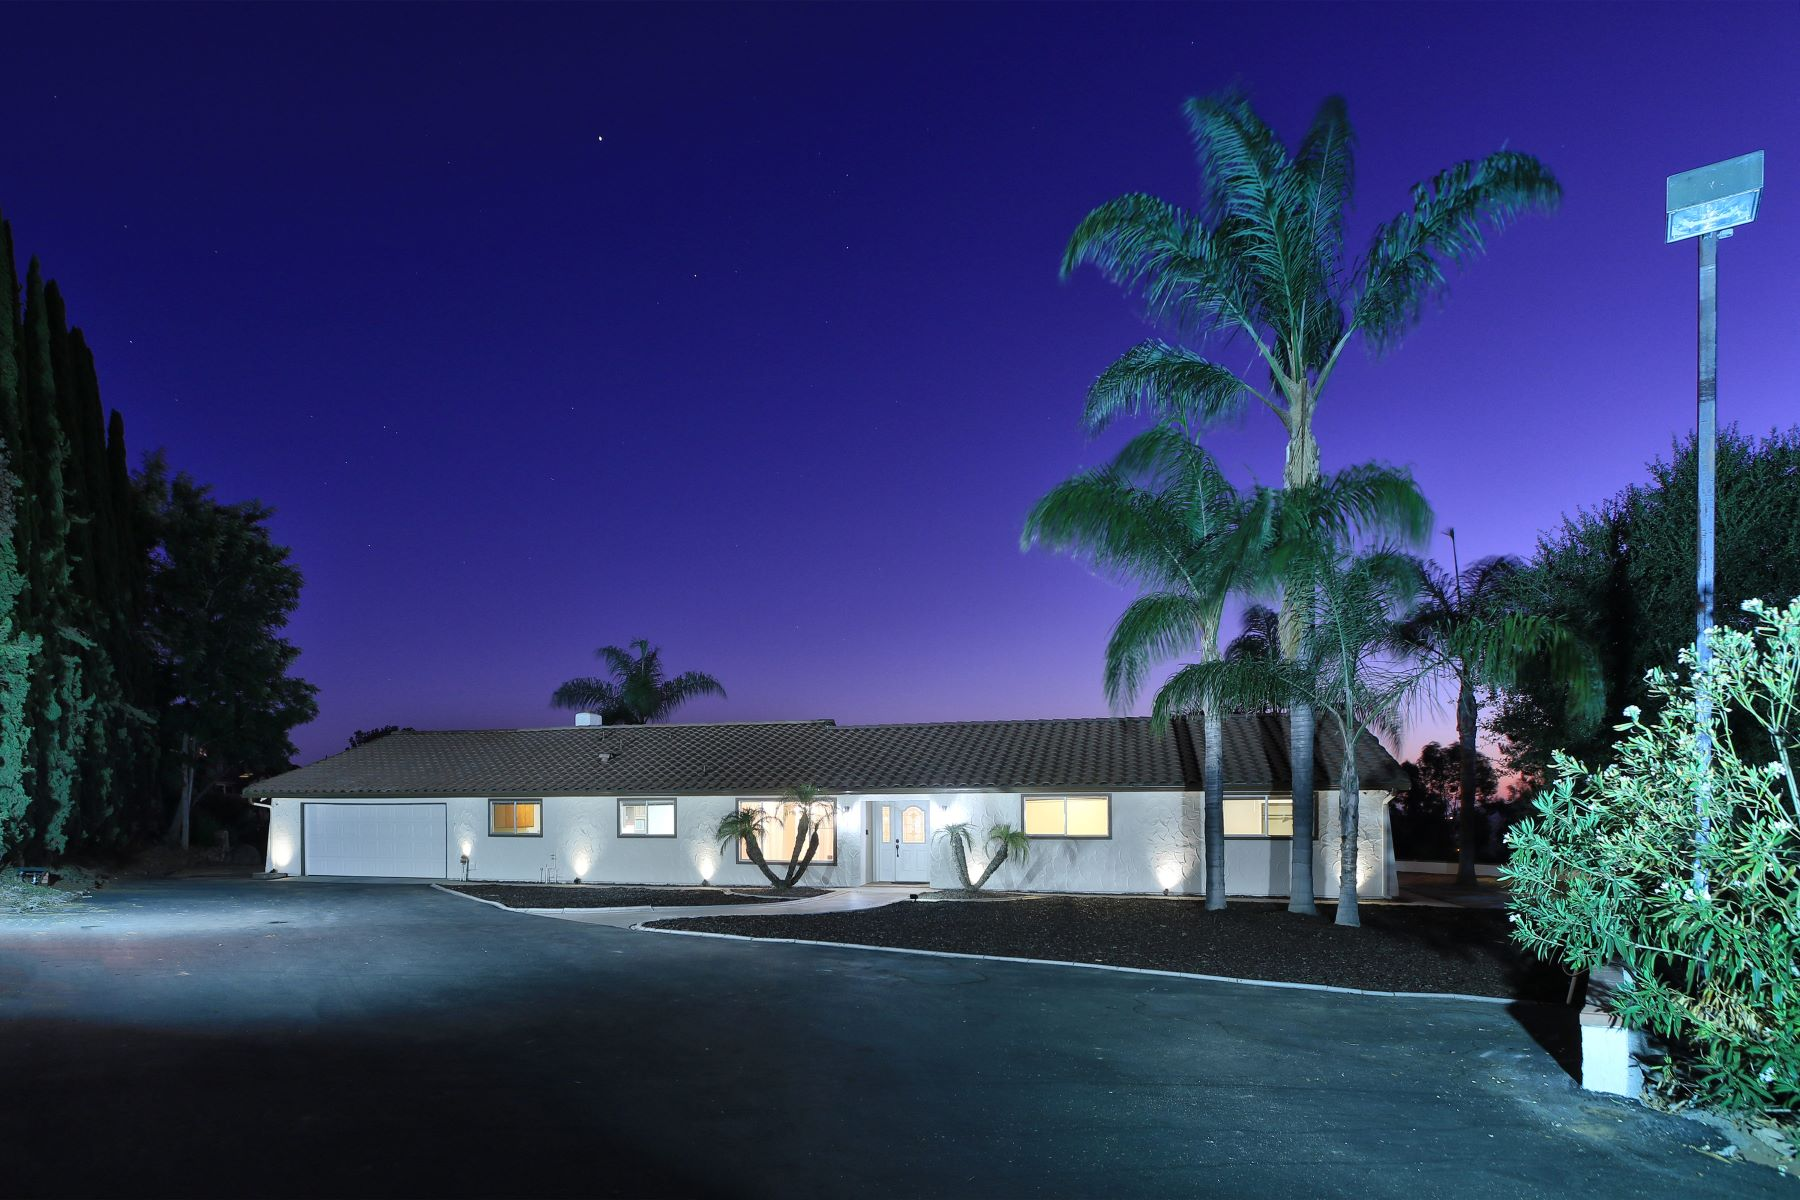 Single Family Homes for Sale at Orchard View - Poway 14957 Orchard View Drive Poway, California 92064 United States